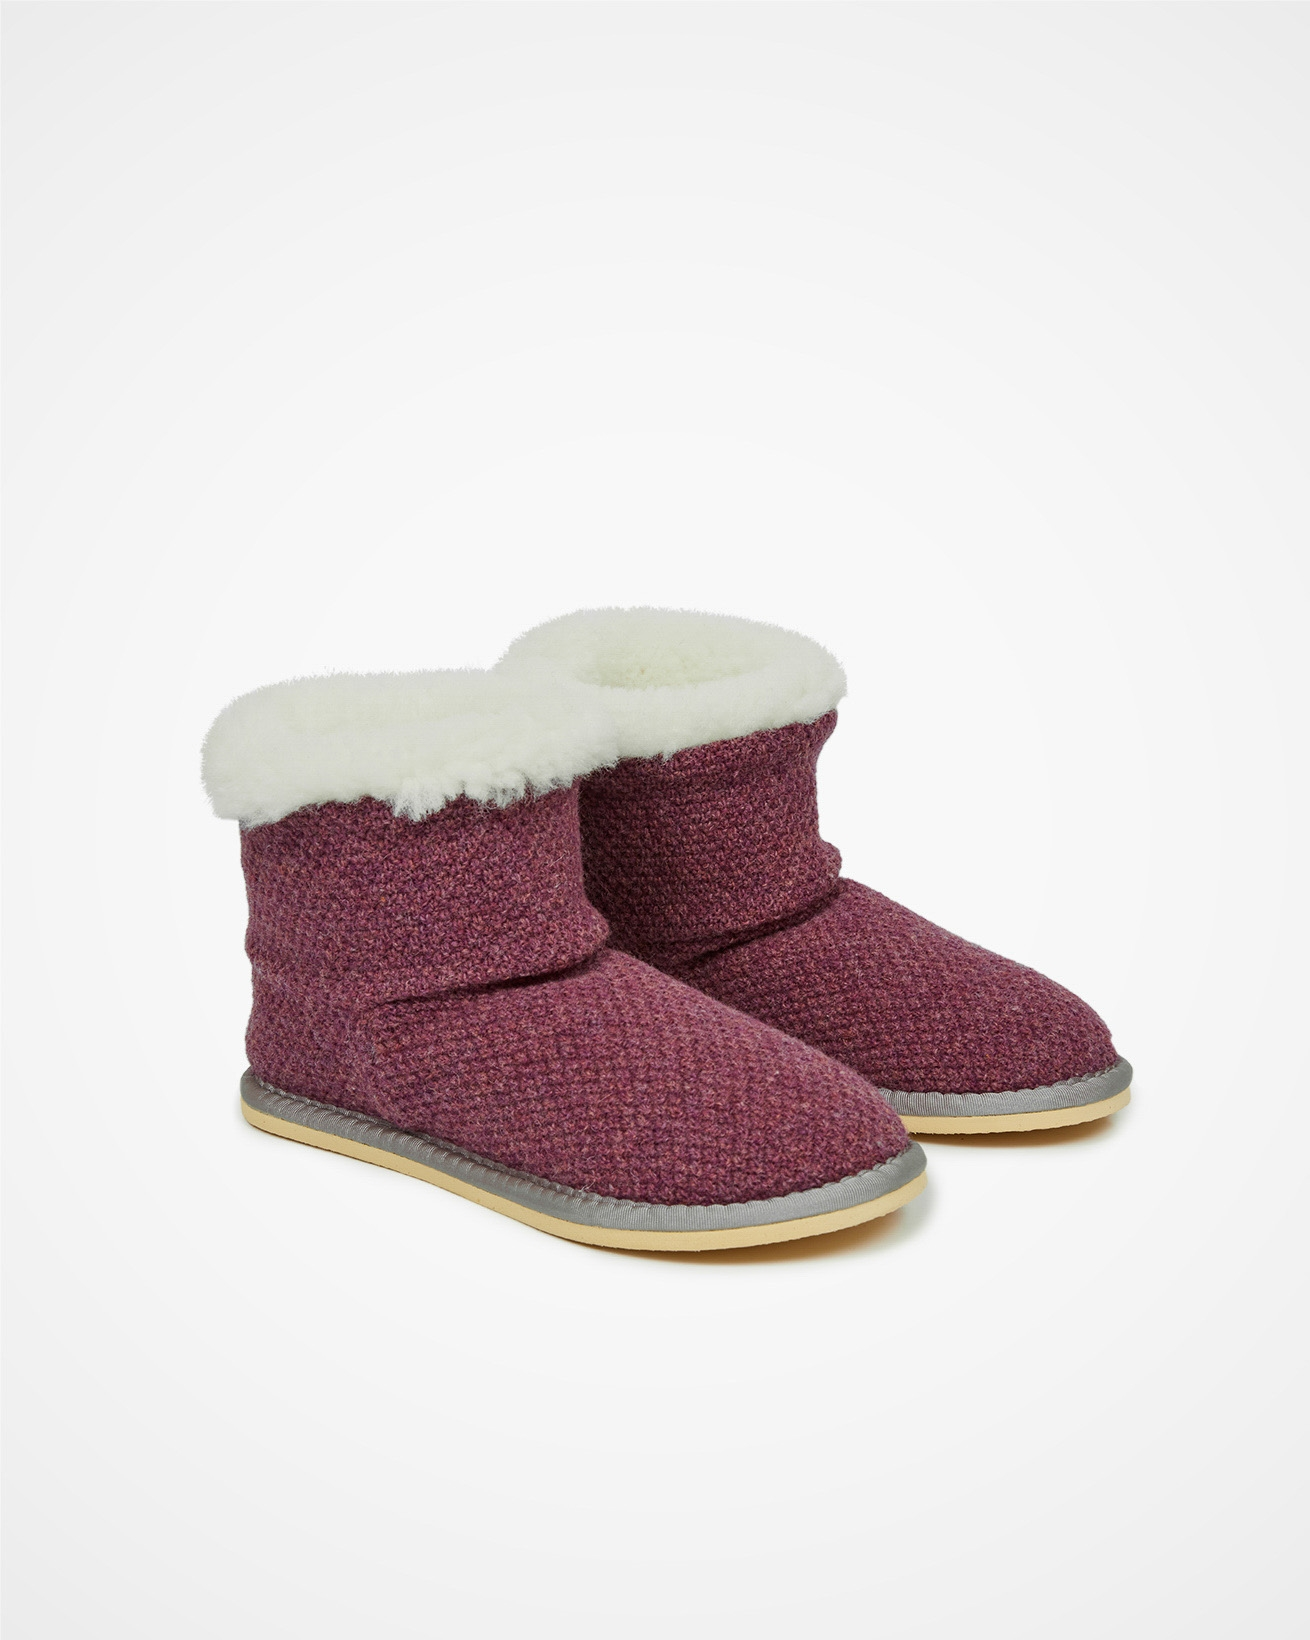 6610_knitted-shortie-slippers_sloeberry_pair_cutout_web.jpg